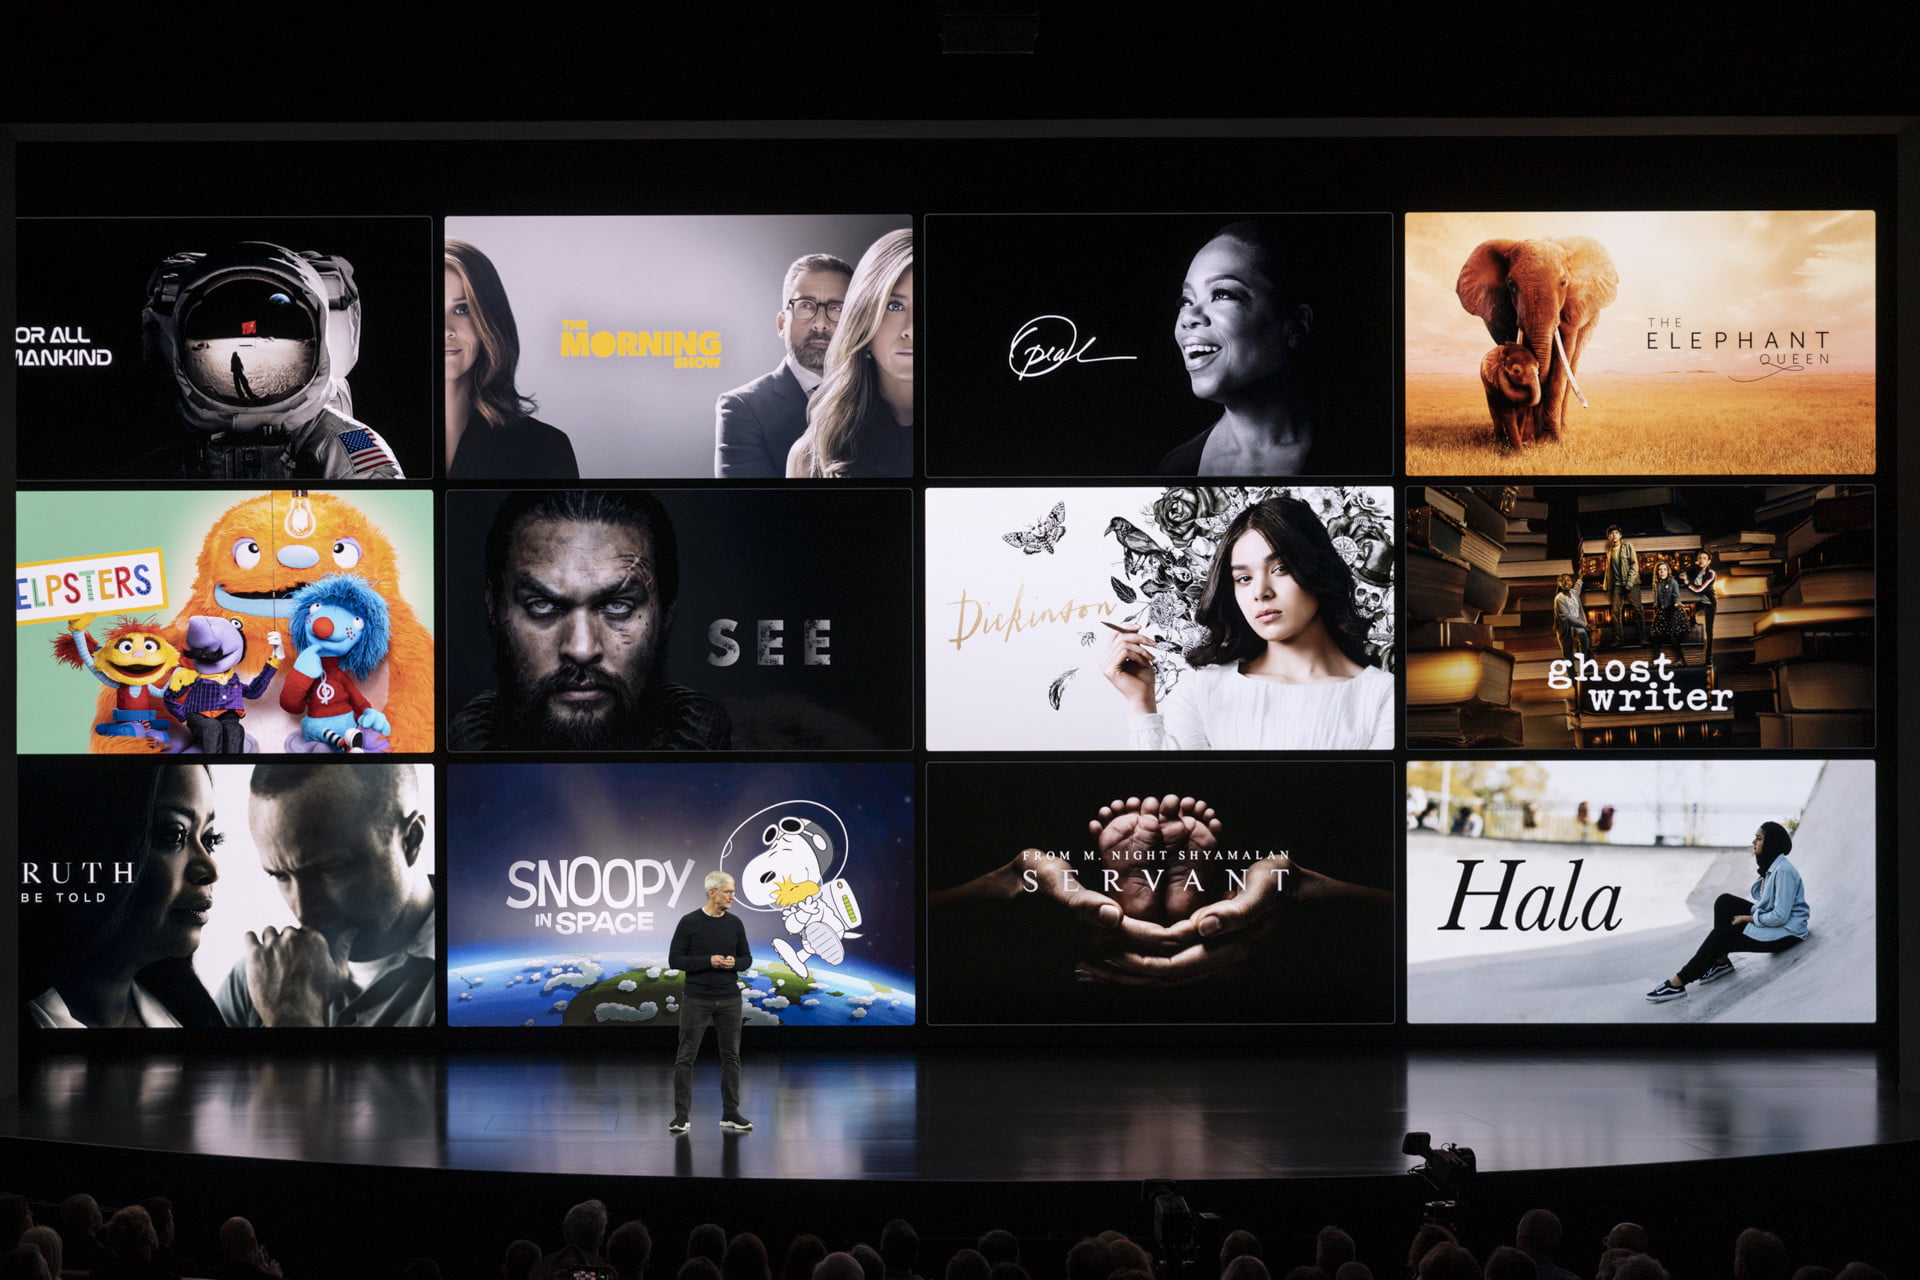 Apple reportedly told Apple TV+ showrunners to avoid negative portrayal of China